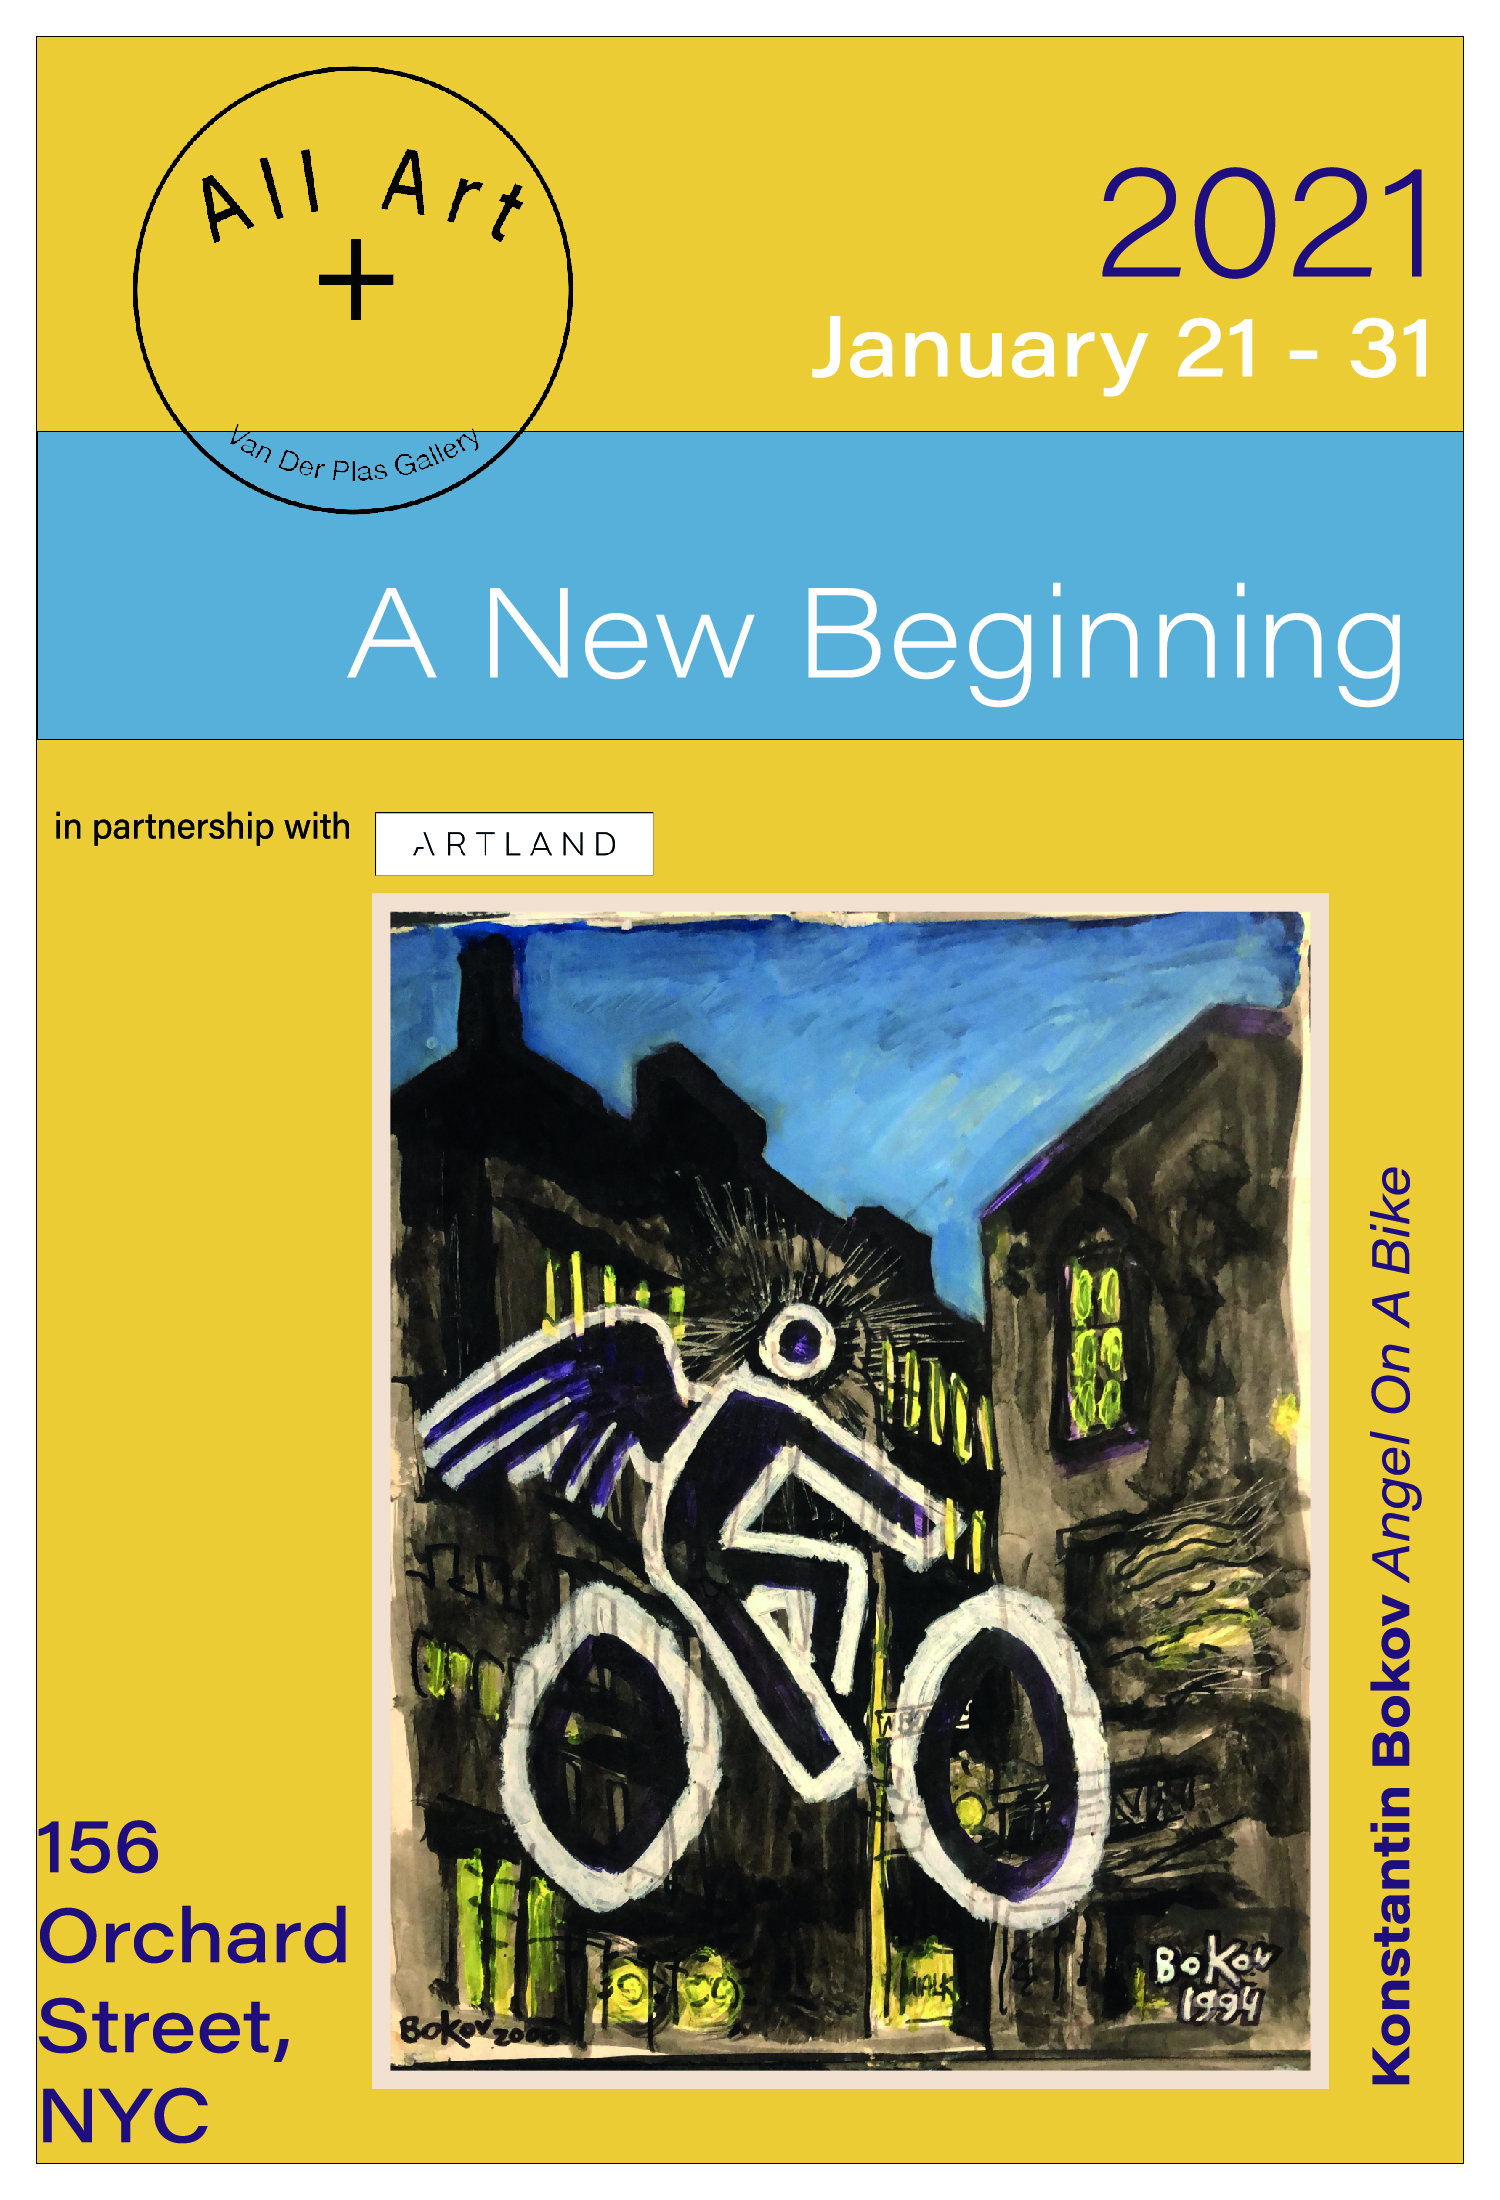 Rosalind Keith - A New Beginning 2021 - Gallery Van Der Plas nel Lower East Side di New York